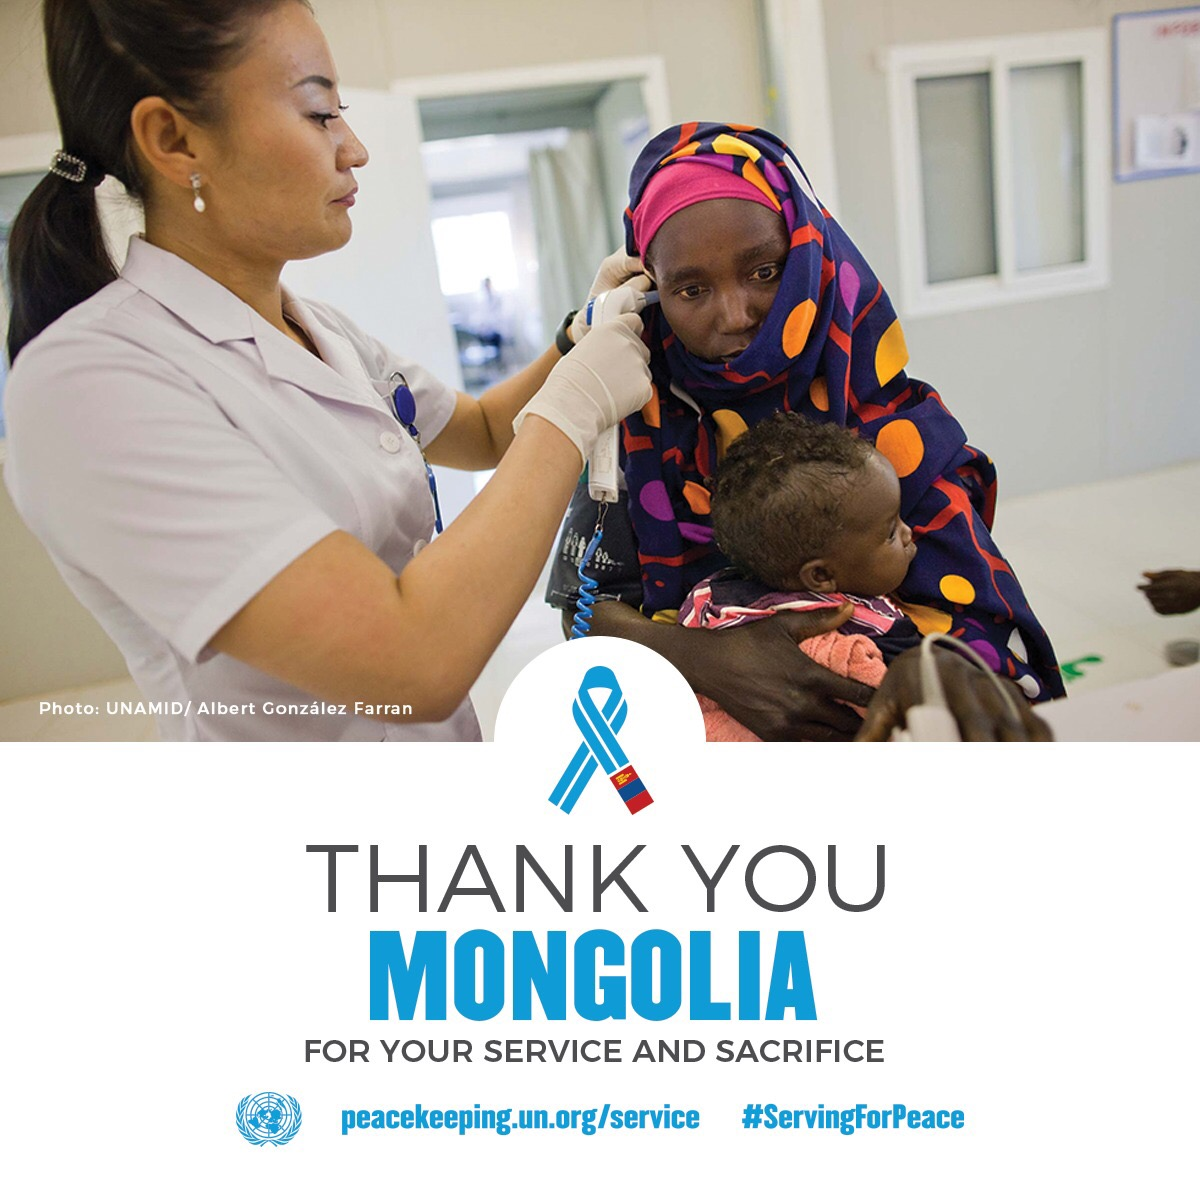 Thank you Mongolian peacekeepers for your service and sacrifice